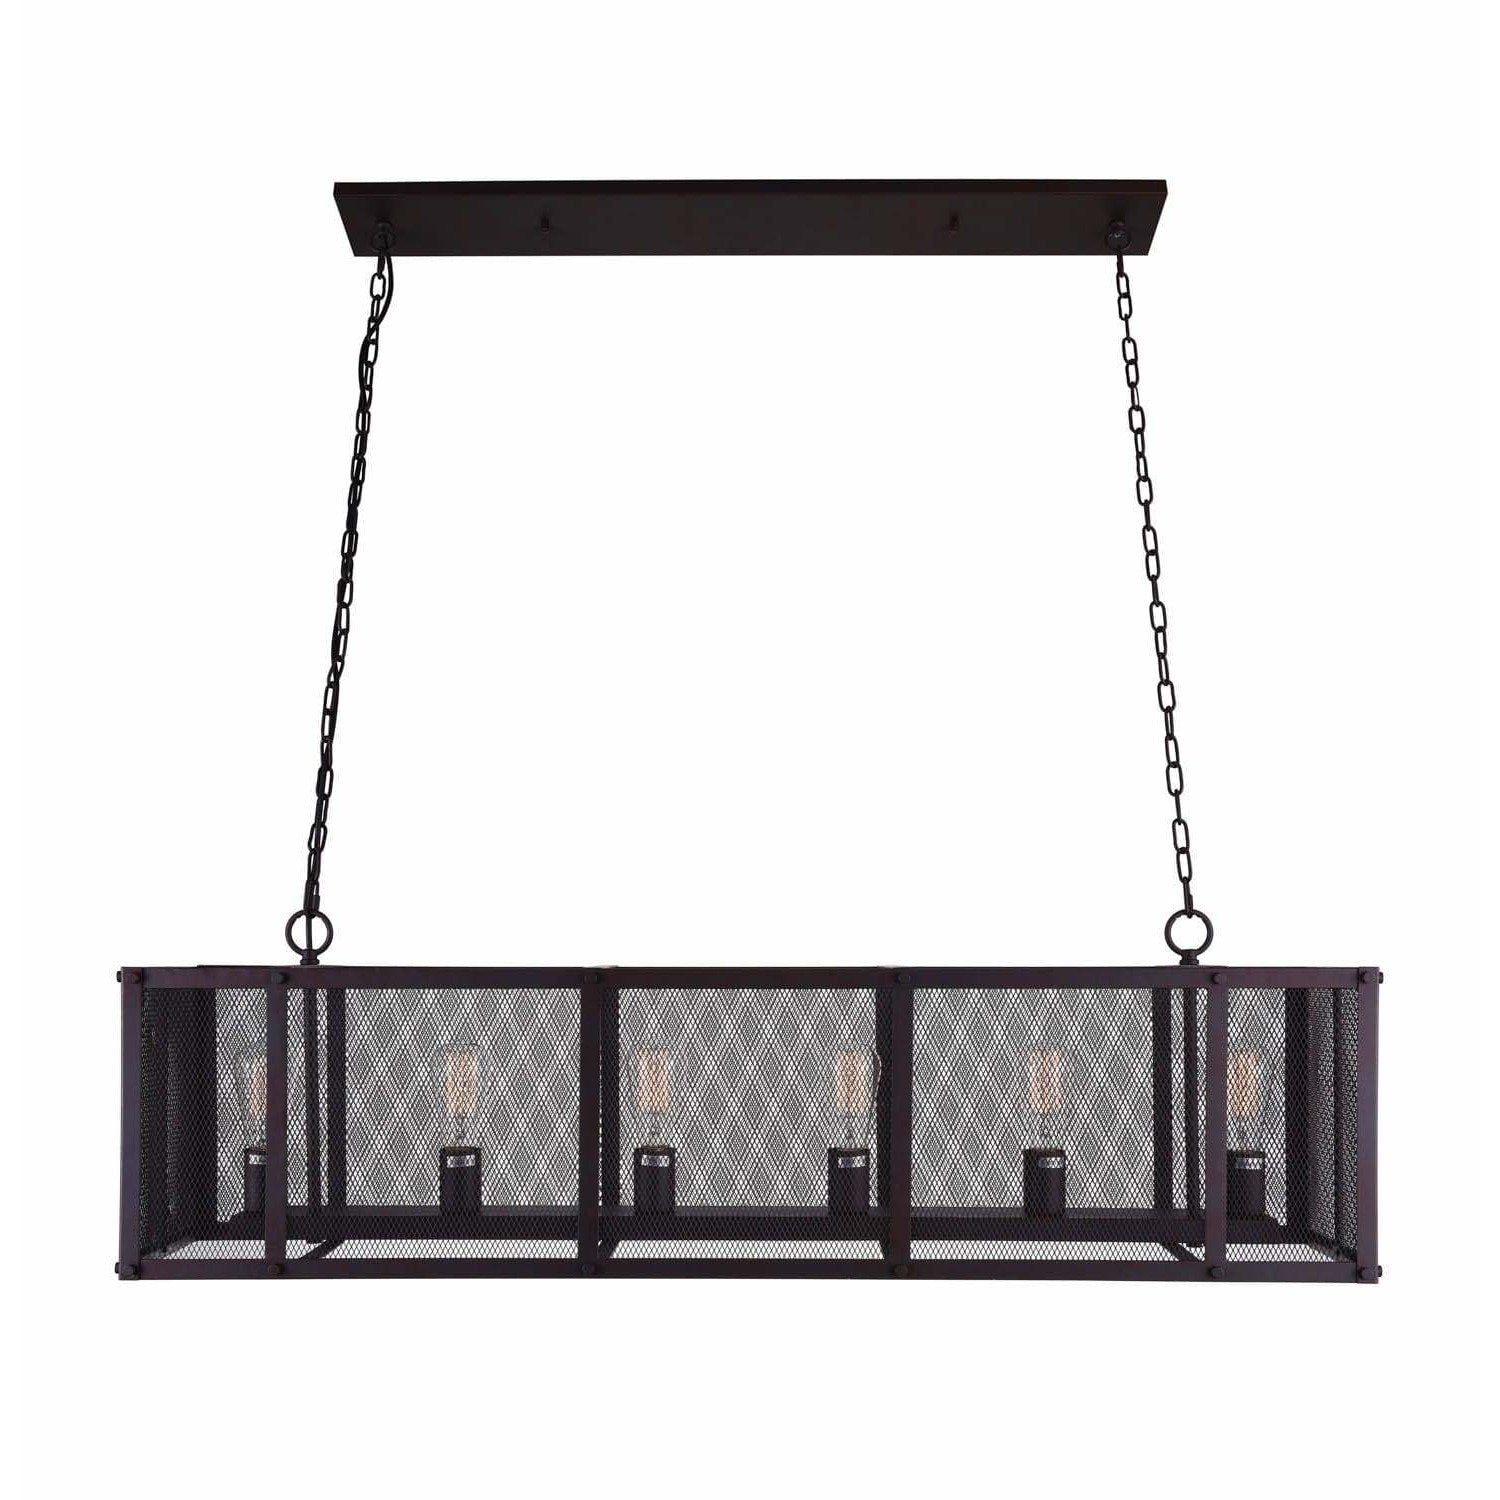 CWI Lighting Island Lighting Reddish Black Heale 6 Light Island Chandelier with Reddish Black finish by CWI Lighting 9937P47-6-219